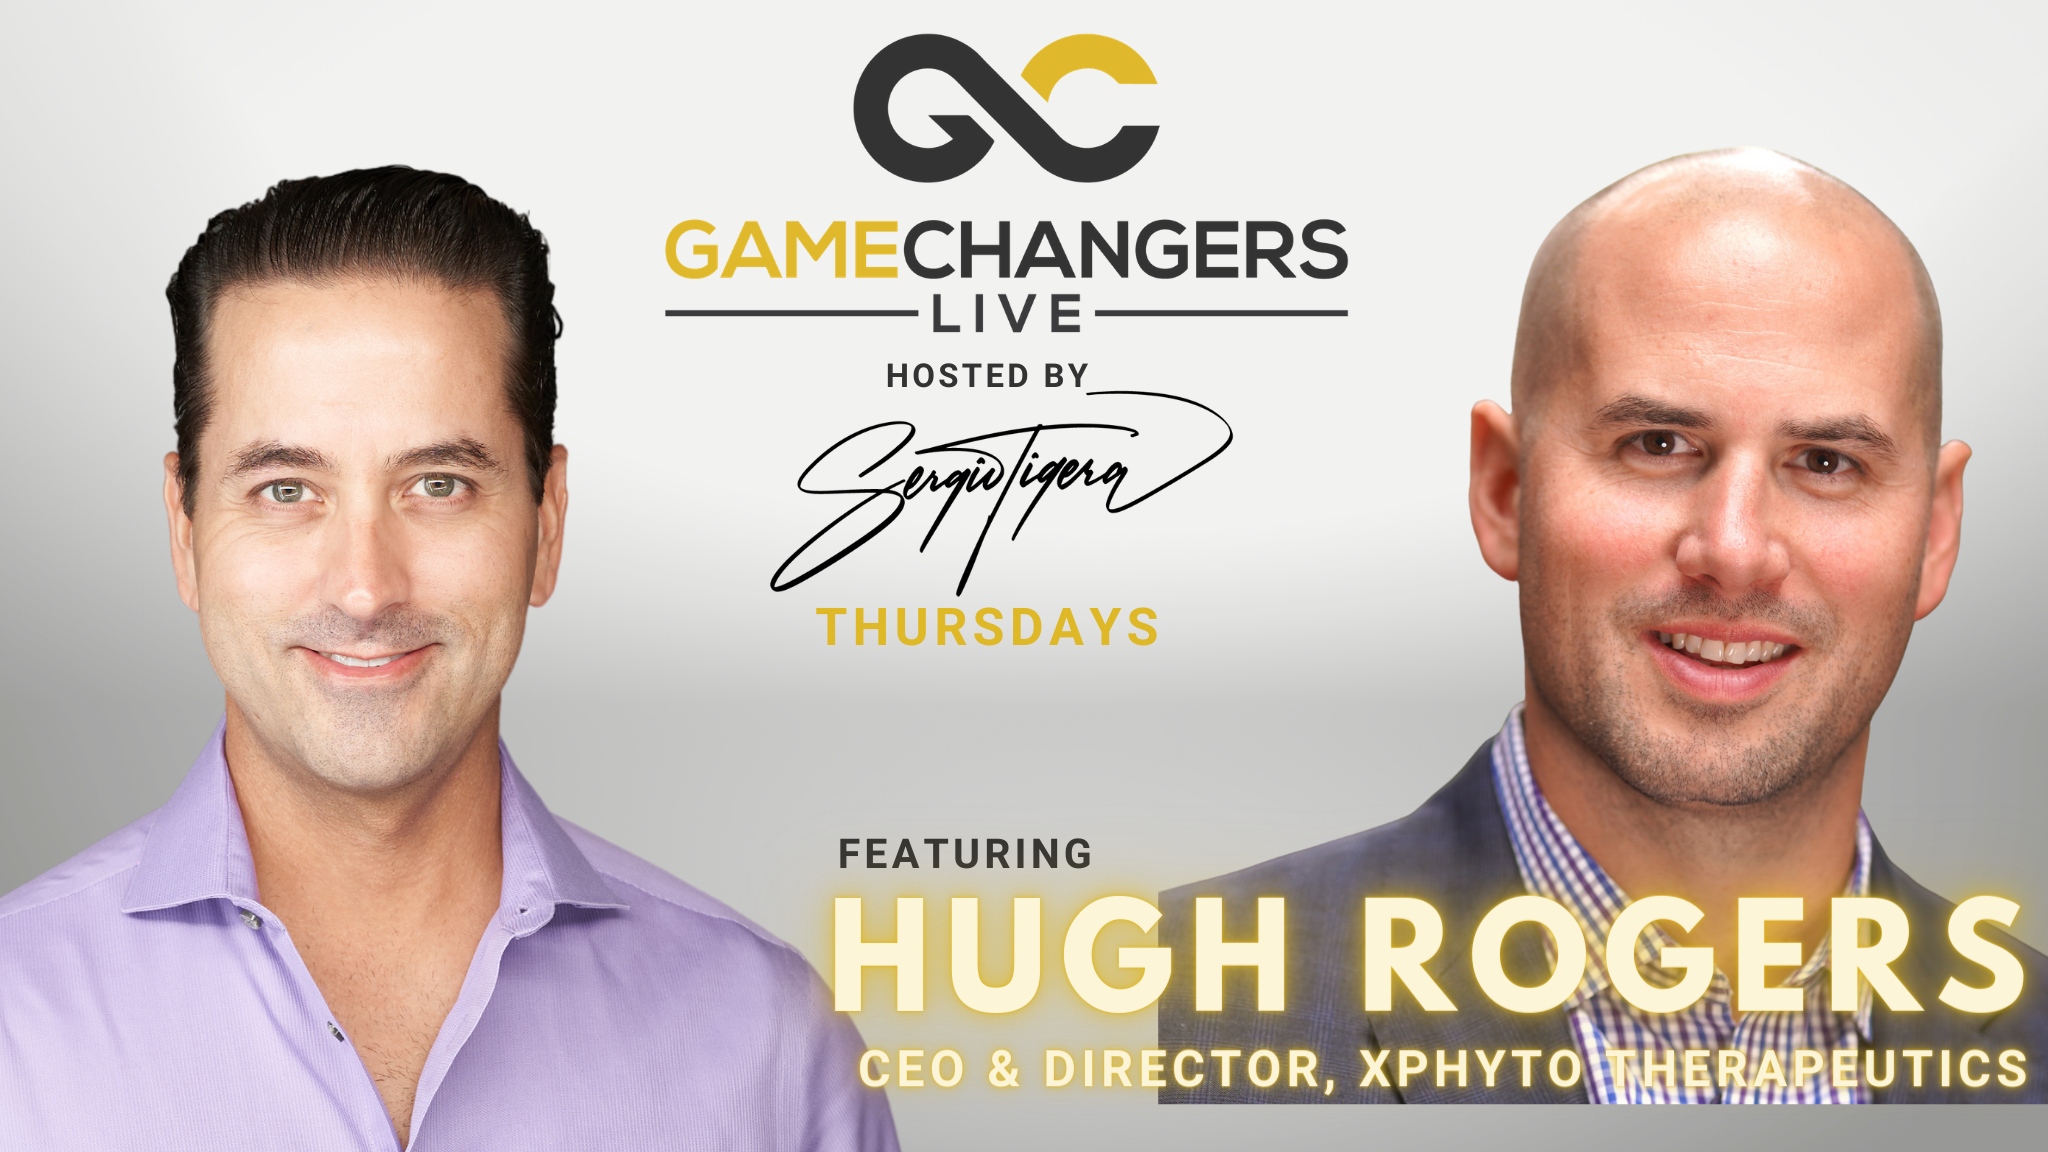 Gamechangers LIVE featuring Hugh Rogers, CEO and Director of XPhyto Therapeutics Corp